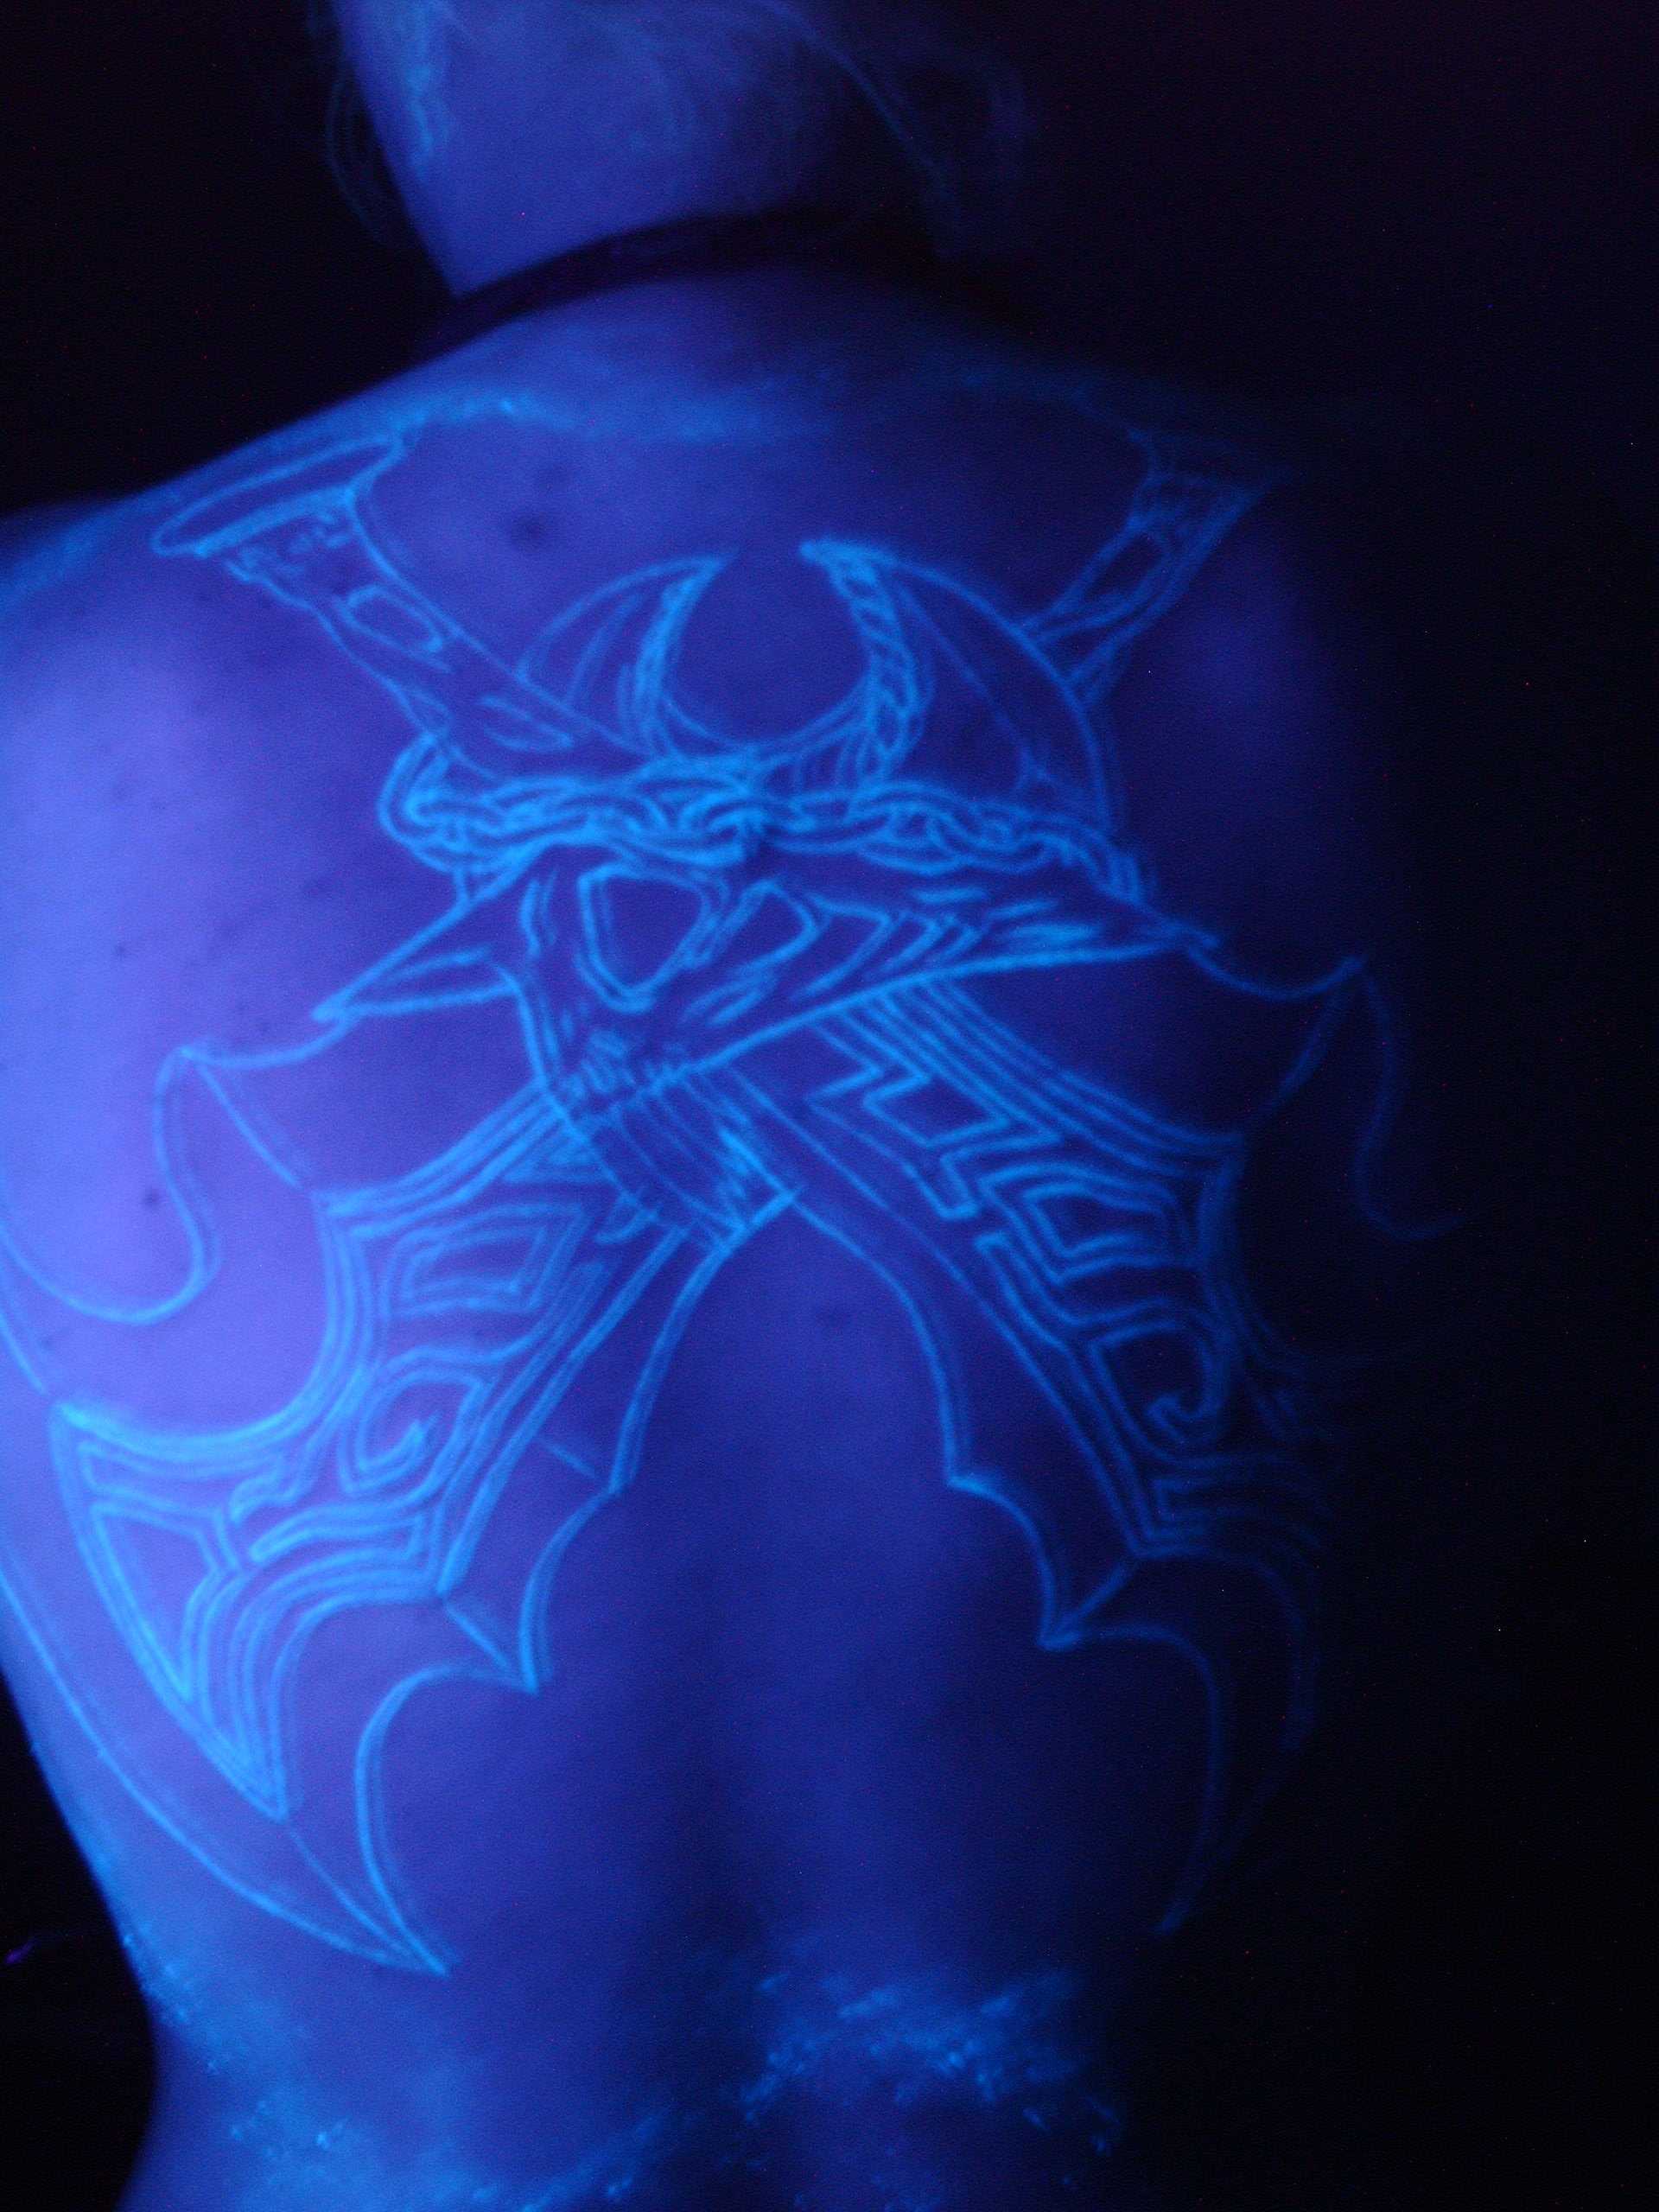 Black Light Tattoos Designs Ideas and Meaning  Tattoos For You